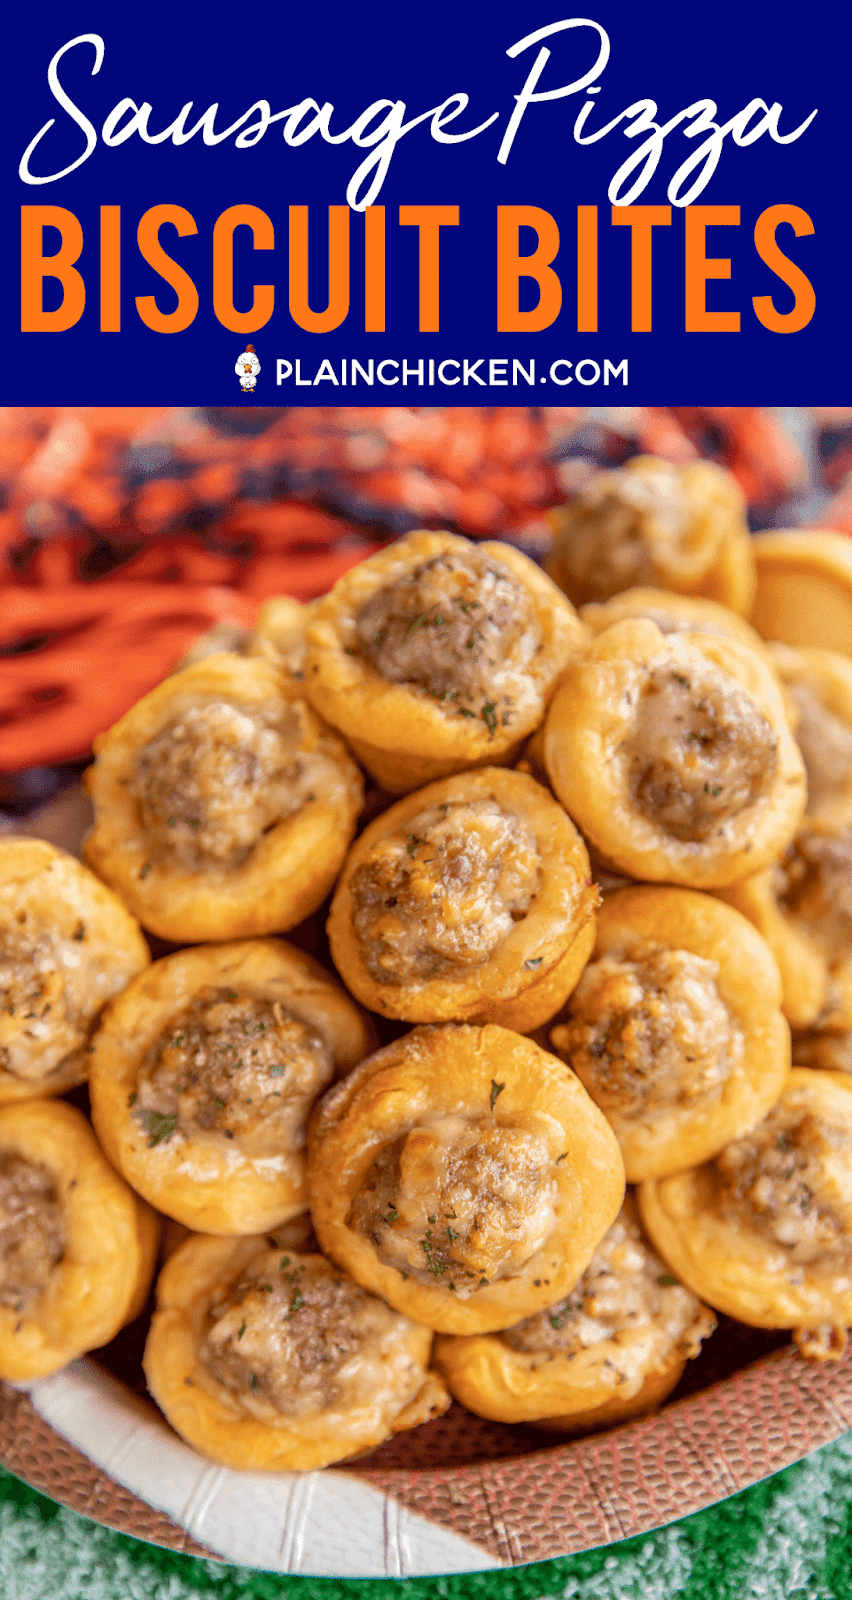 Sausage Pizza Biscuit Bites - only 4 ingredients! Sausage, spaghetti seasoning, mozzarella cheese and biscuits. Can add bell pepper, onion or mushrooms to the mixture too. Ready to eat in about 15 minutes. These things fly off the plate at our parties and tailgates! Serve with some warm pizza sauce for dipping. Everyone LOVES this easy appetizer recipe.